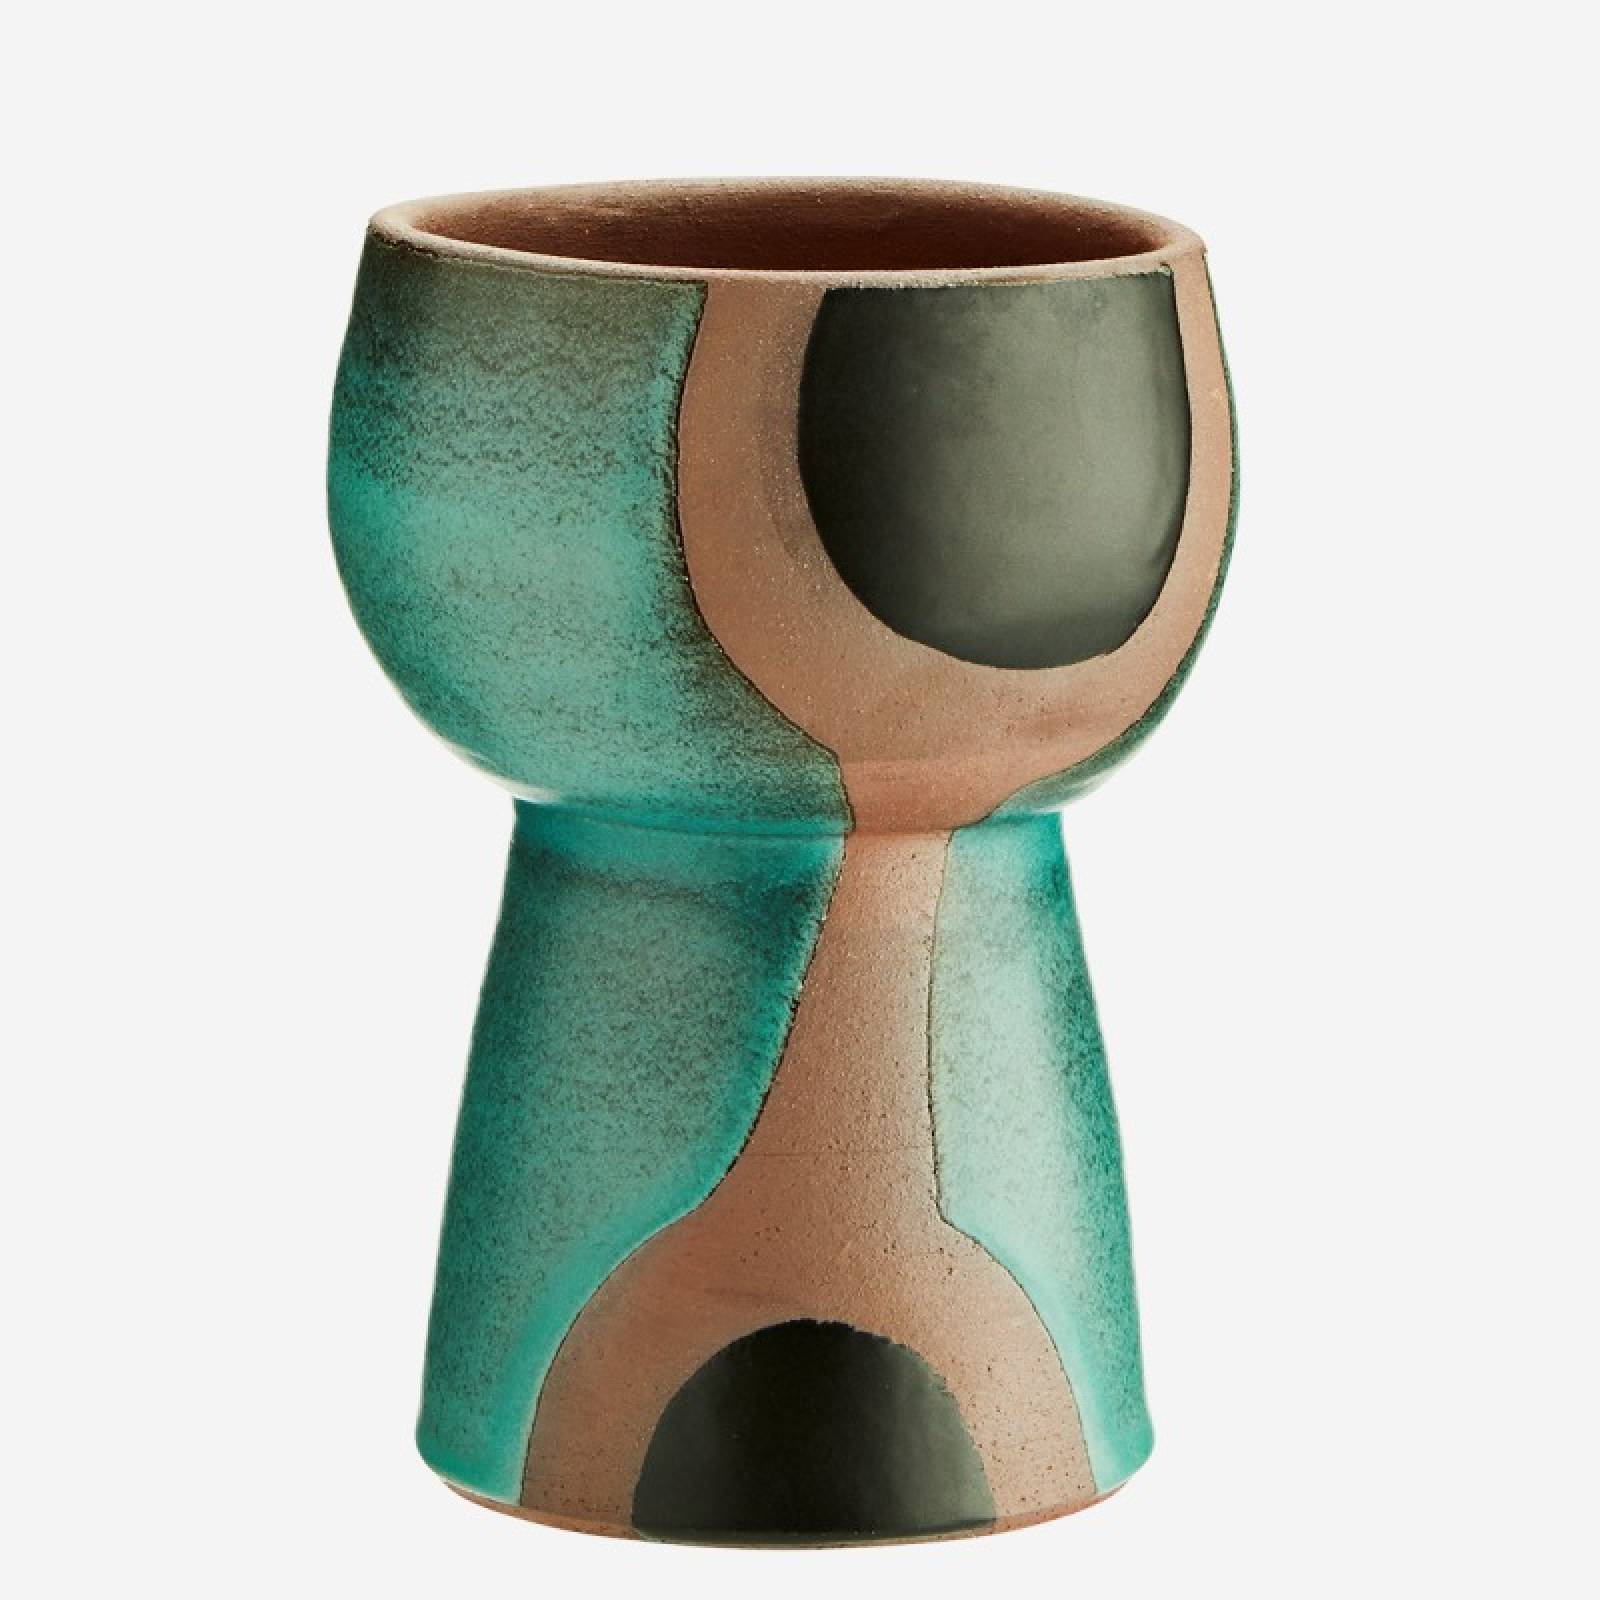 Curved Green Vase With Black Spots On Plinth